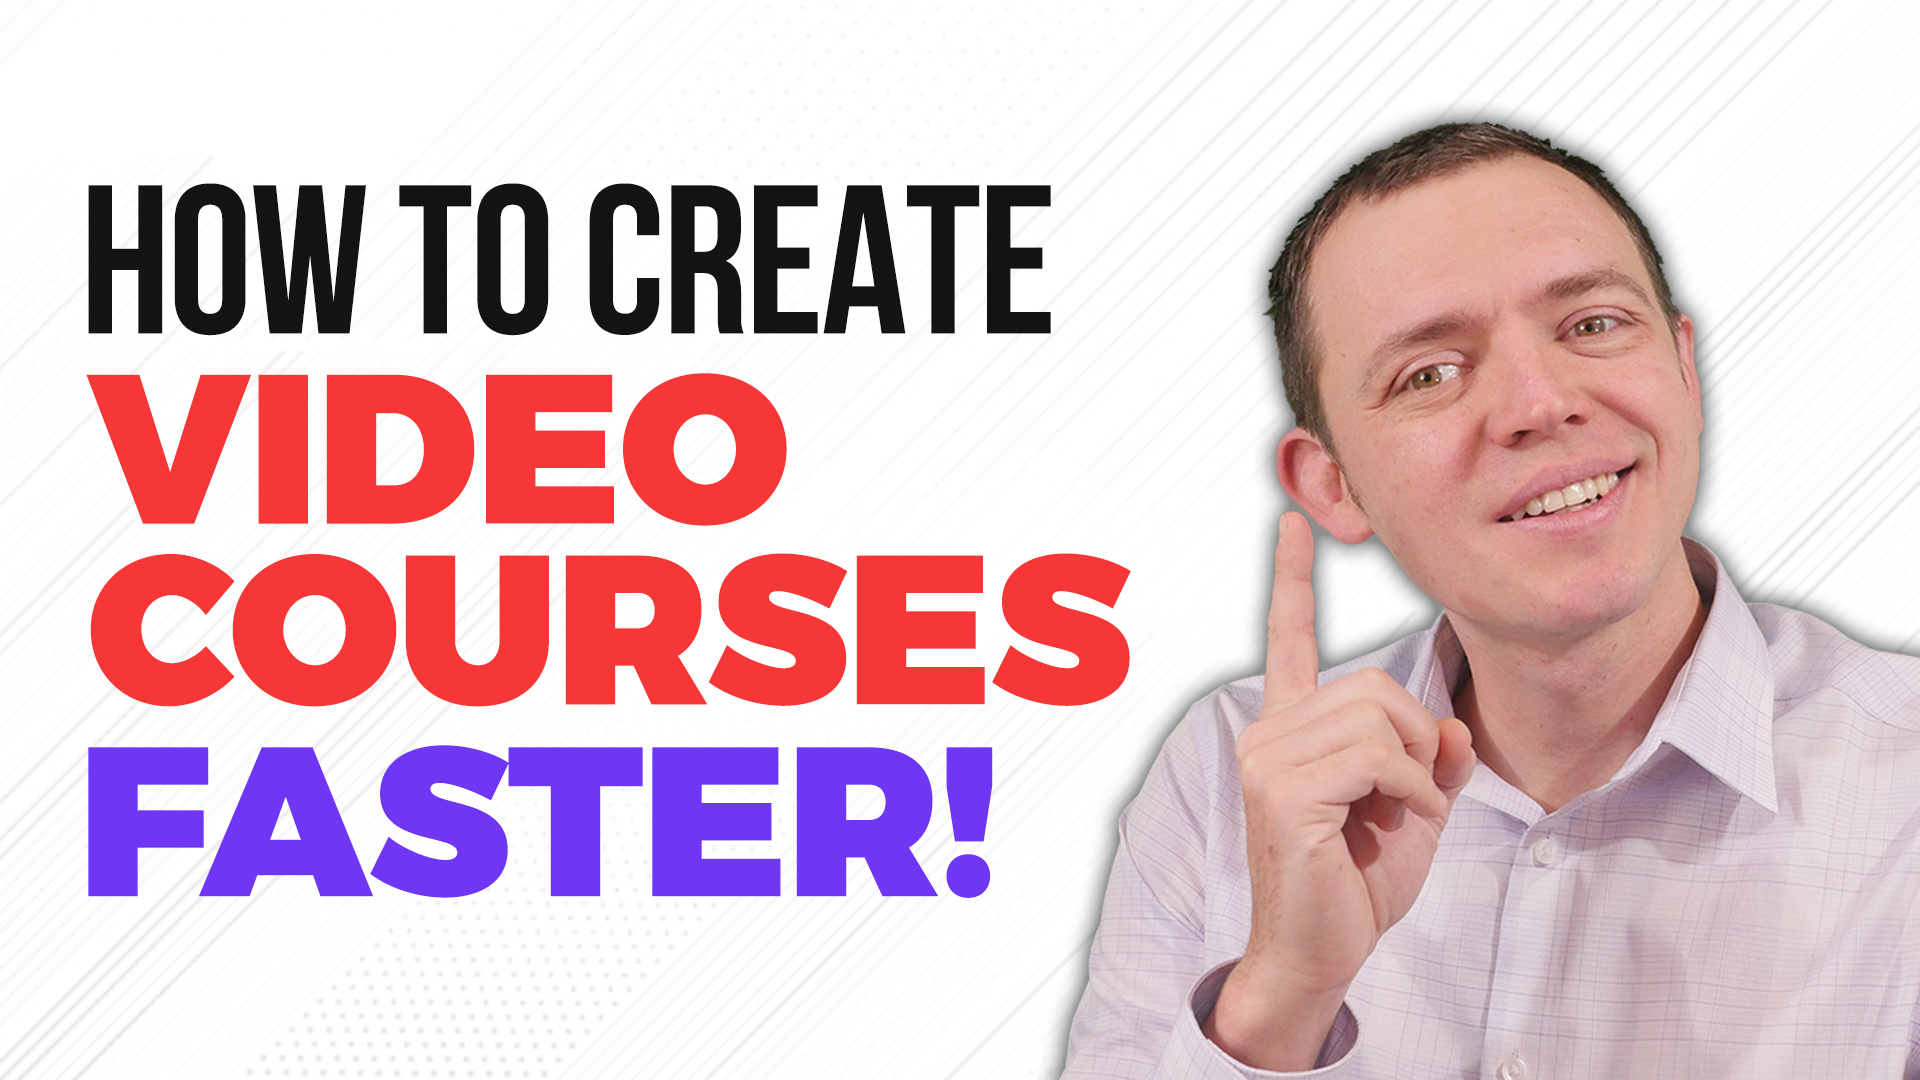 How to Make and Produce Your Video Courses Faster!